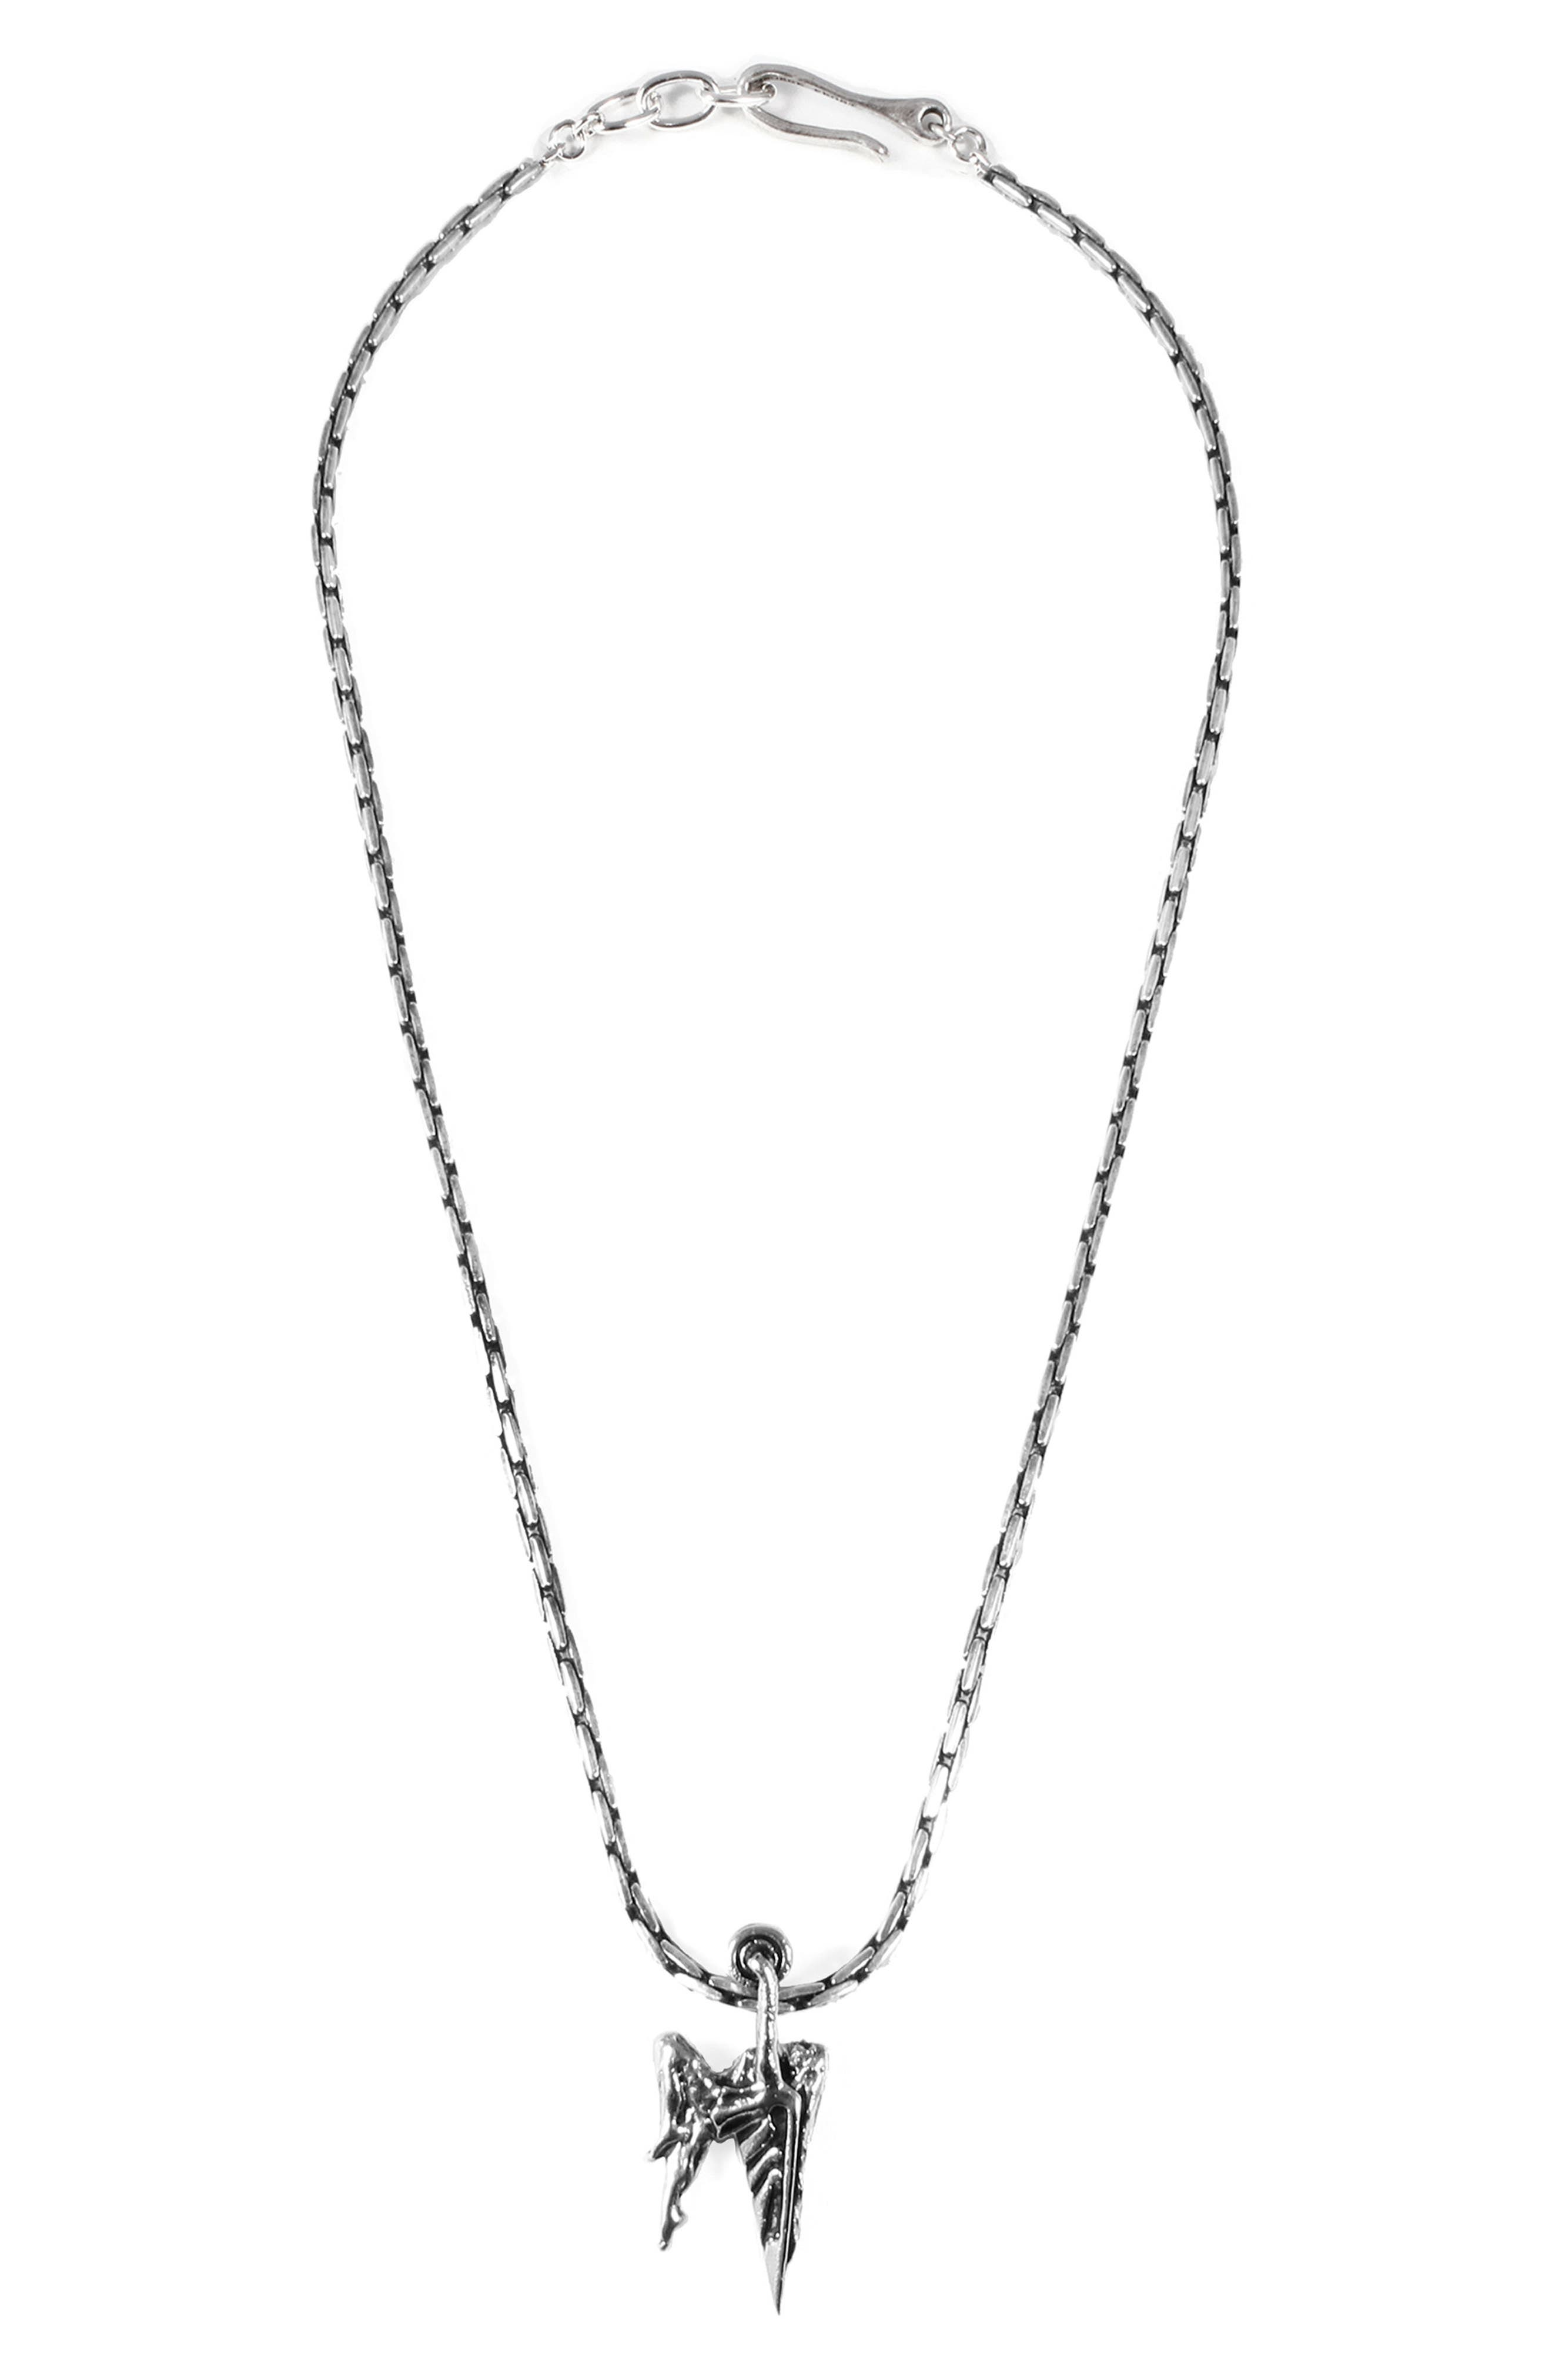 Pursuit Necklace,                             Main thumbnail 1, color,                             040